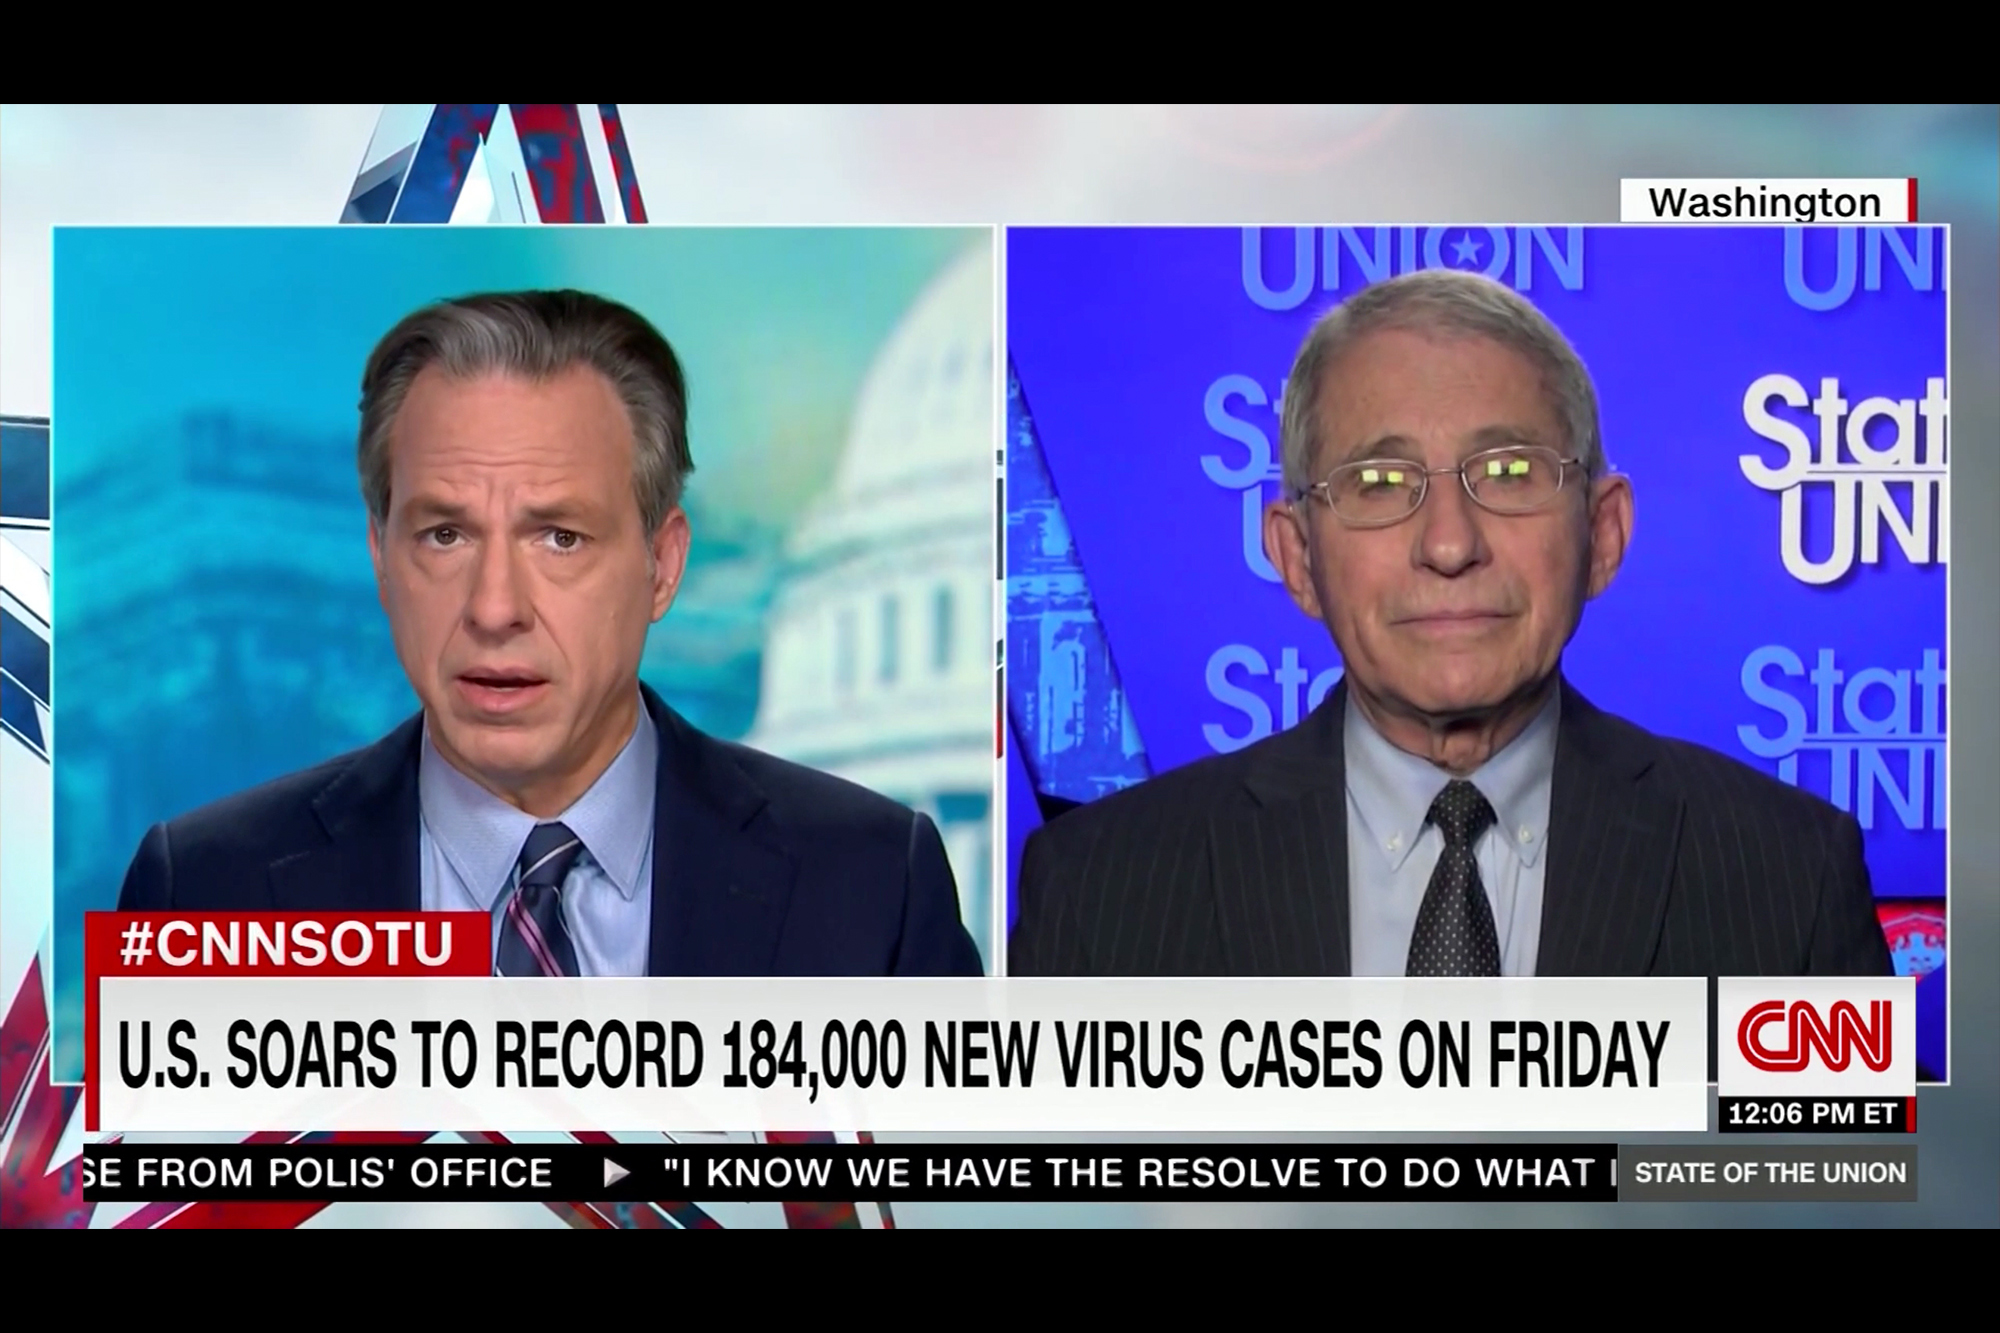 Fauci Warns U.S. Virus Death Toll Could Surpass 400,000 by March - Rolling Stone 3